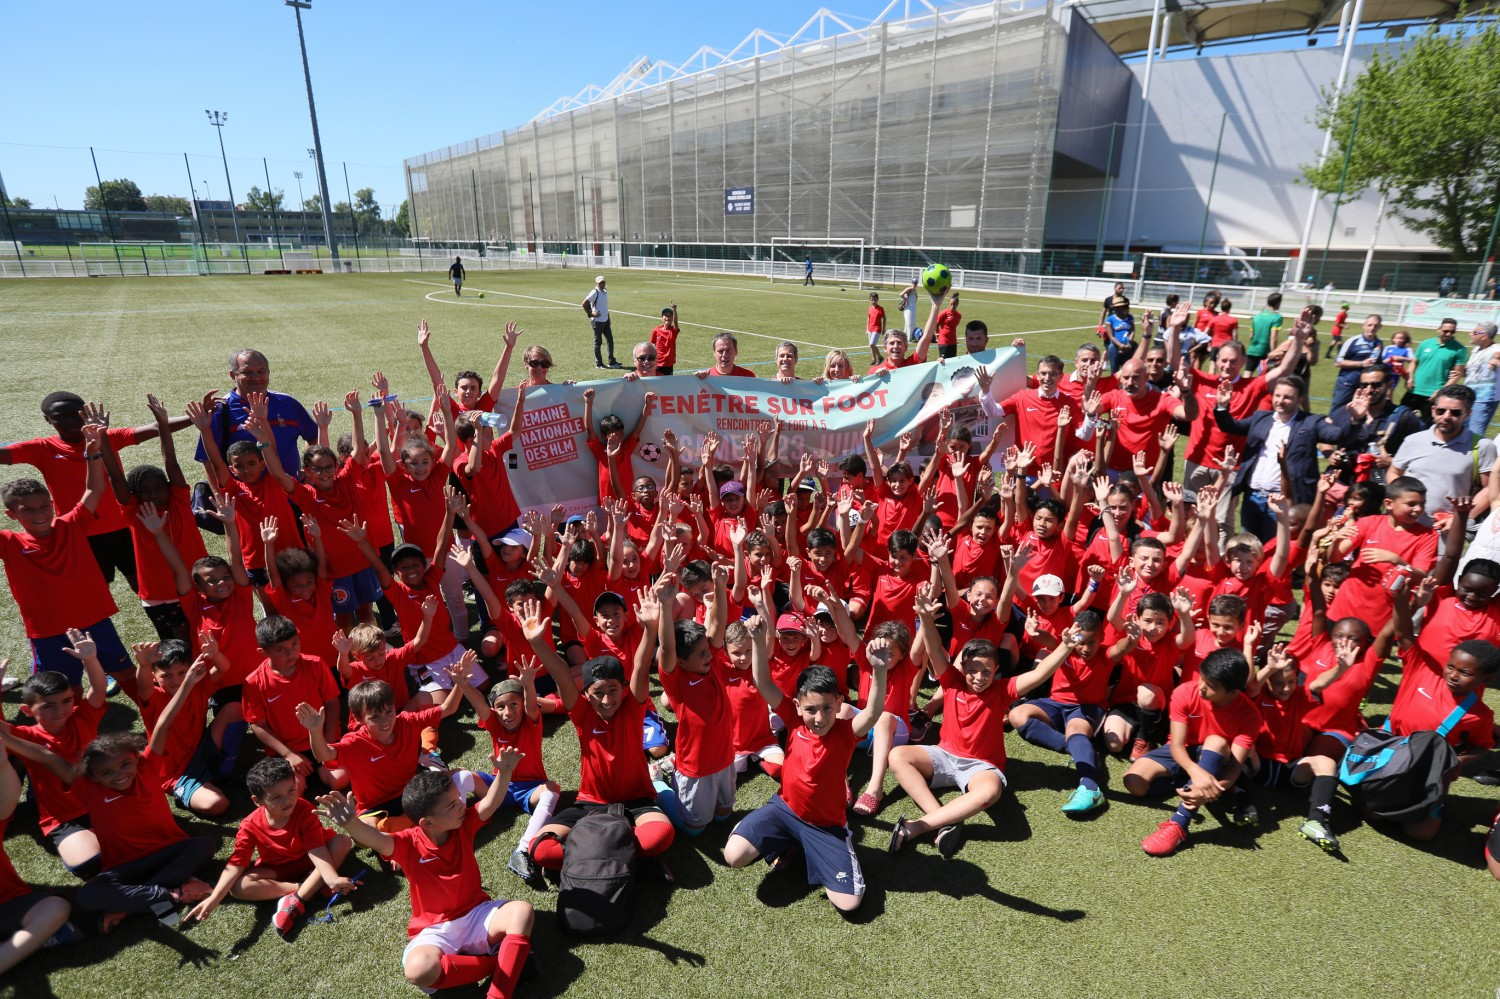 rencontres sportives toulouse)